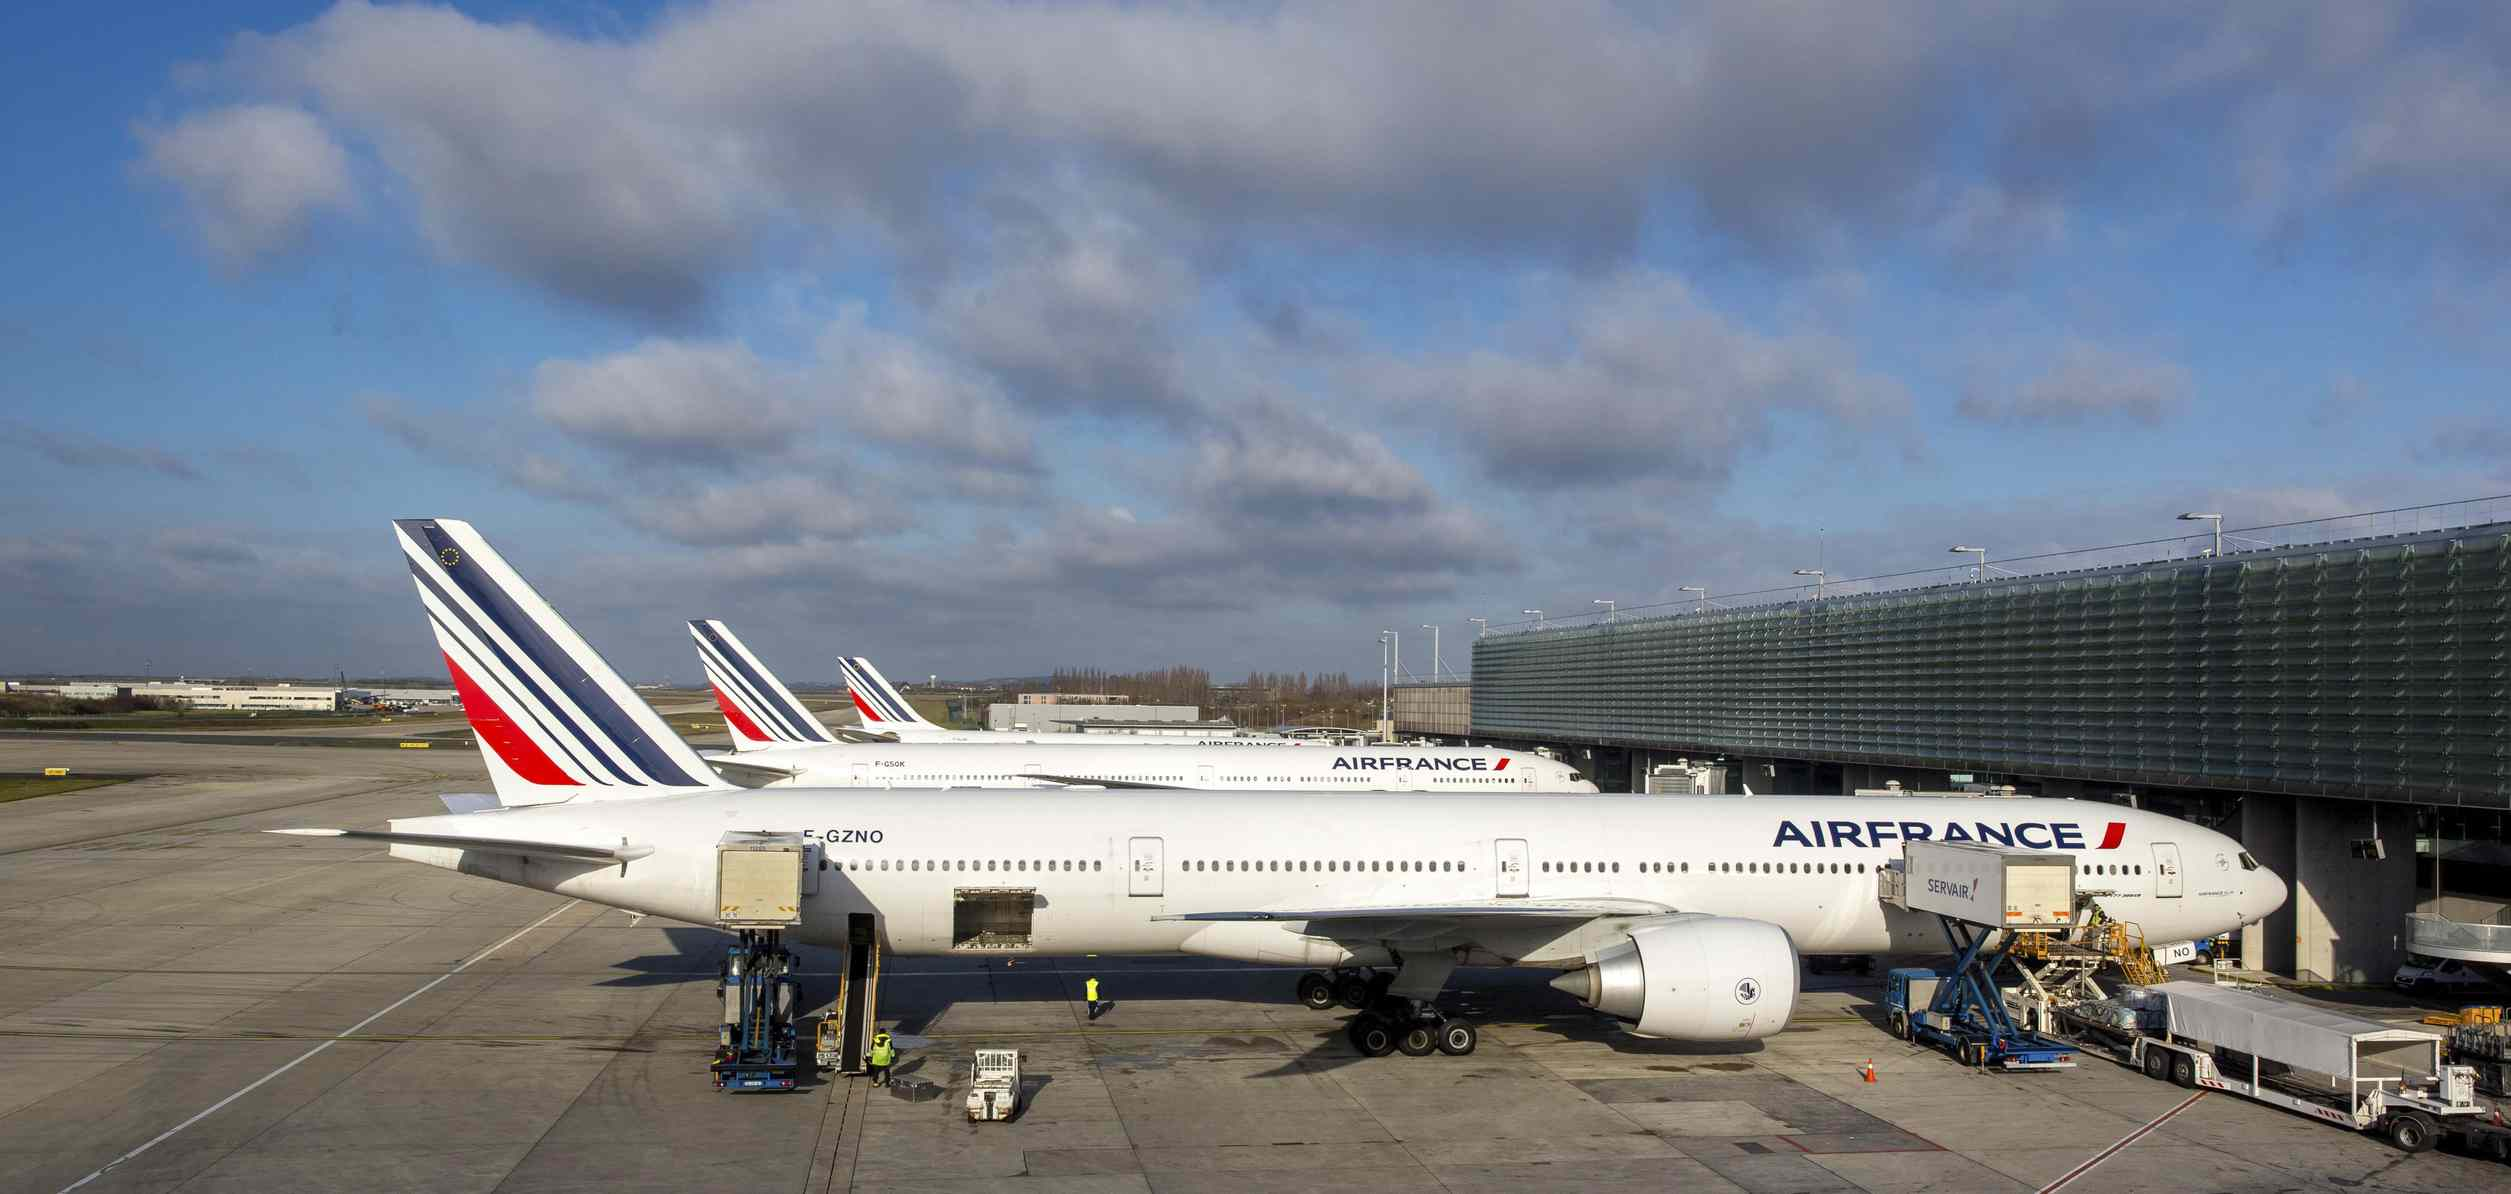 France pledges €300 million to support nation's airports